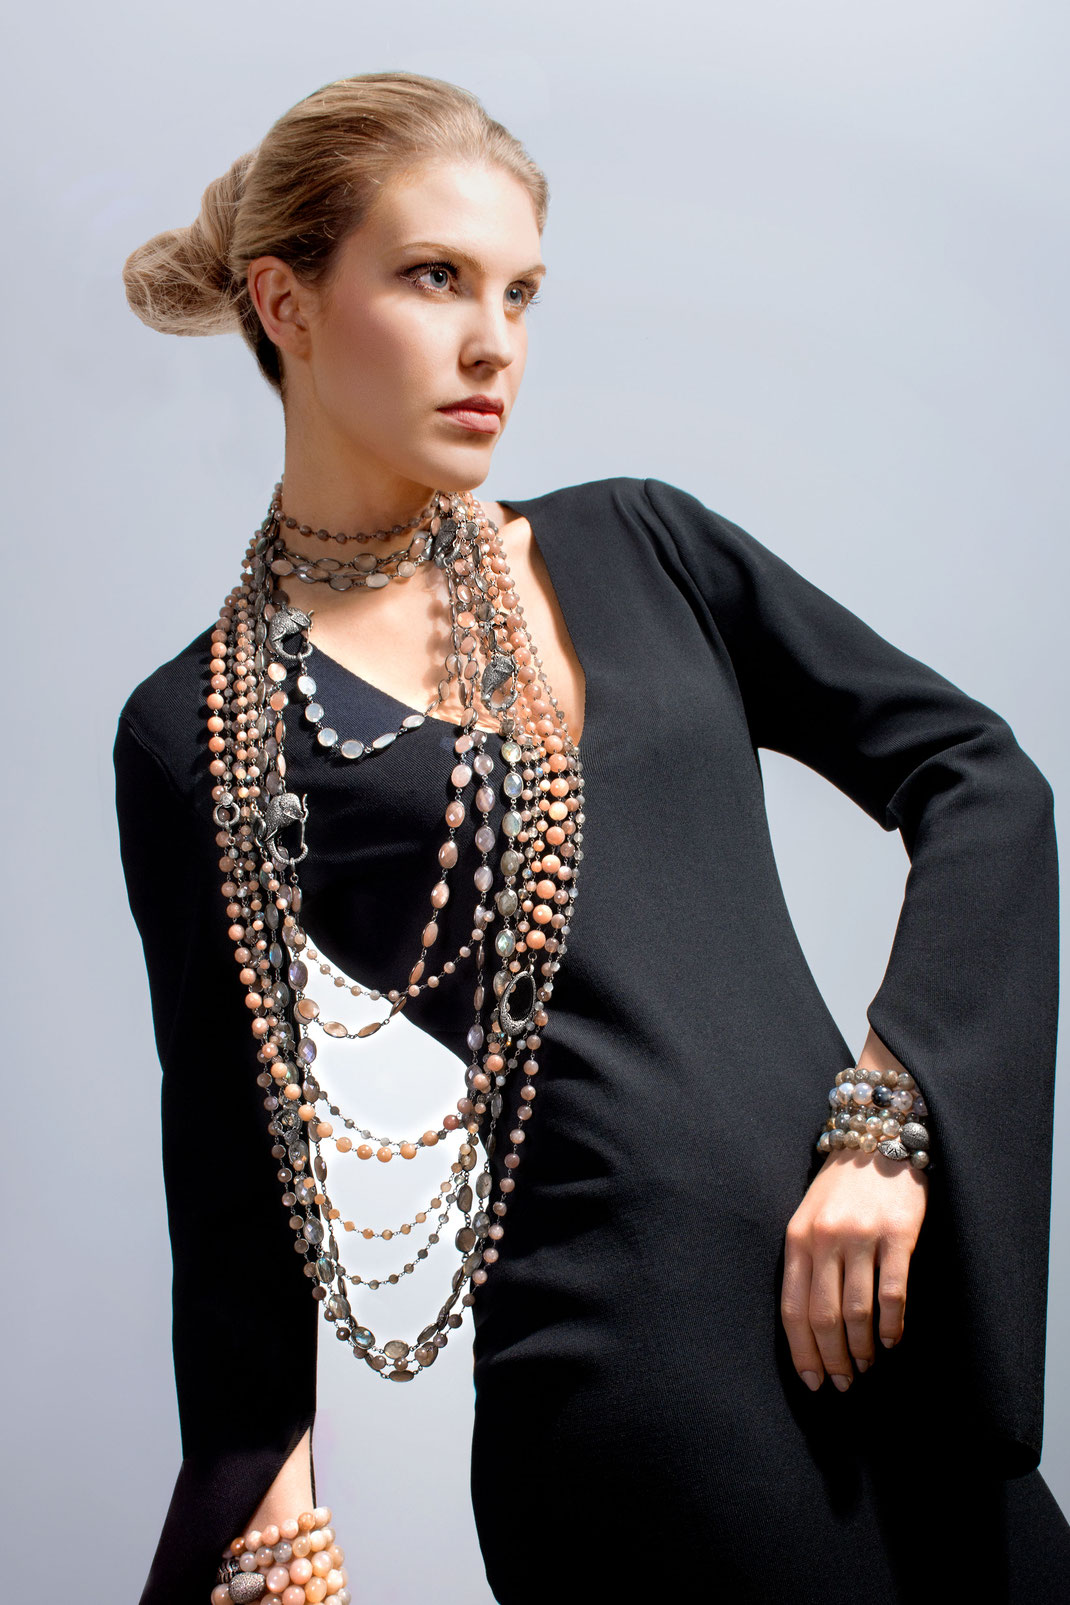 casual elegant long neckaces with diamond clasps worn layered